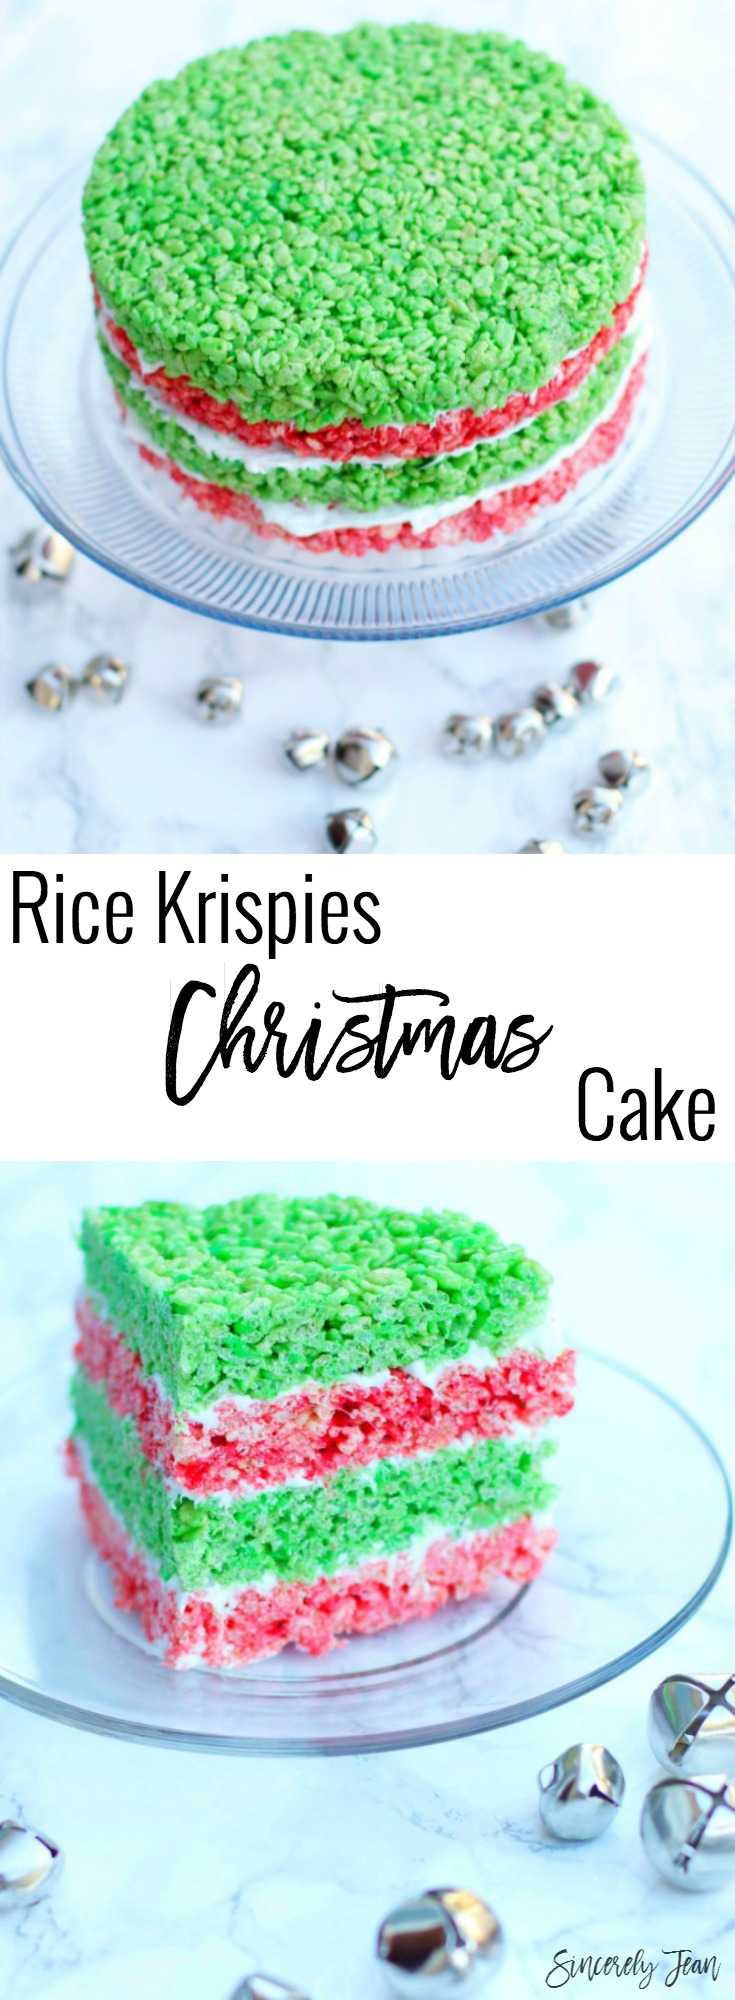 SincerelyJean.com brings you a delicious Dessert Cake with Rice Krispies Treats for Christmas